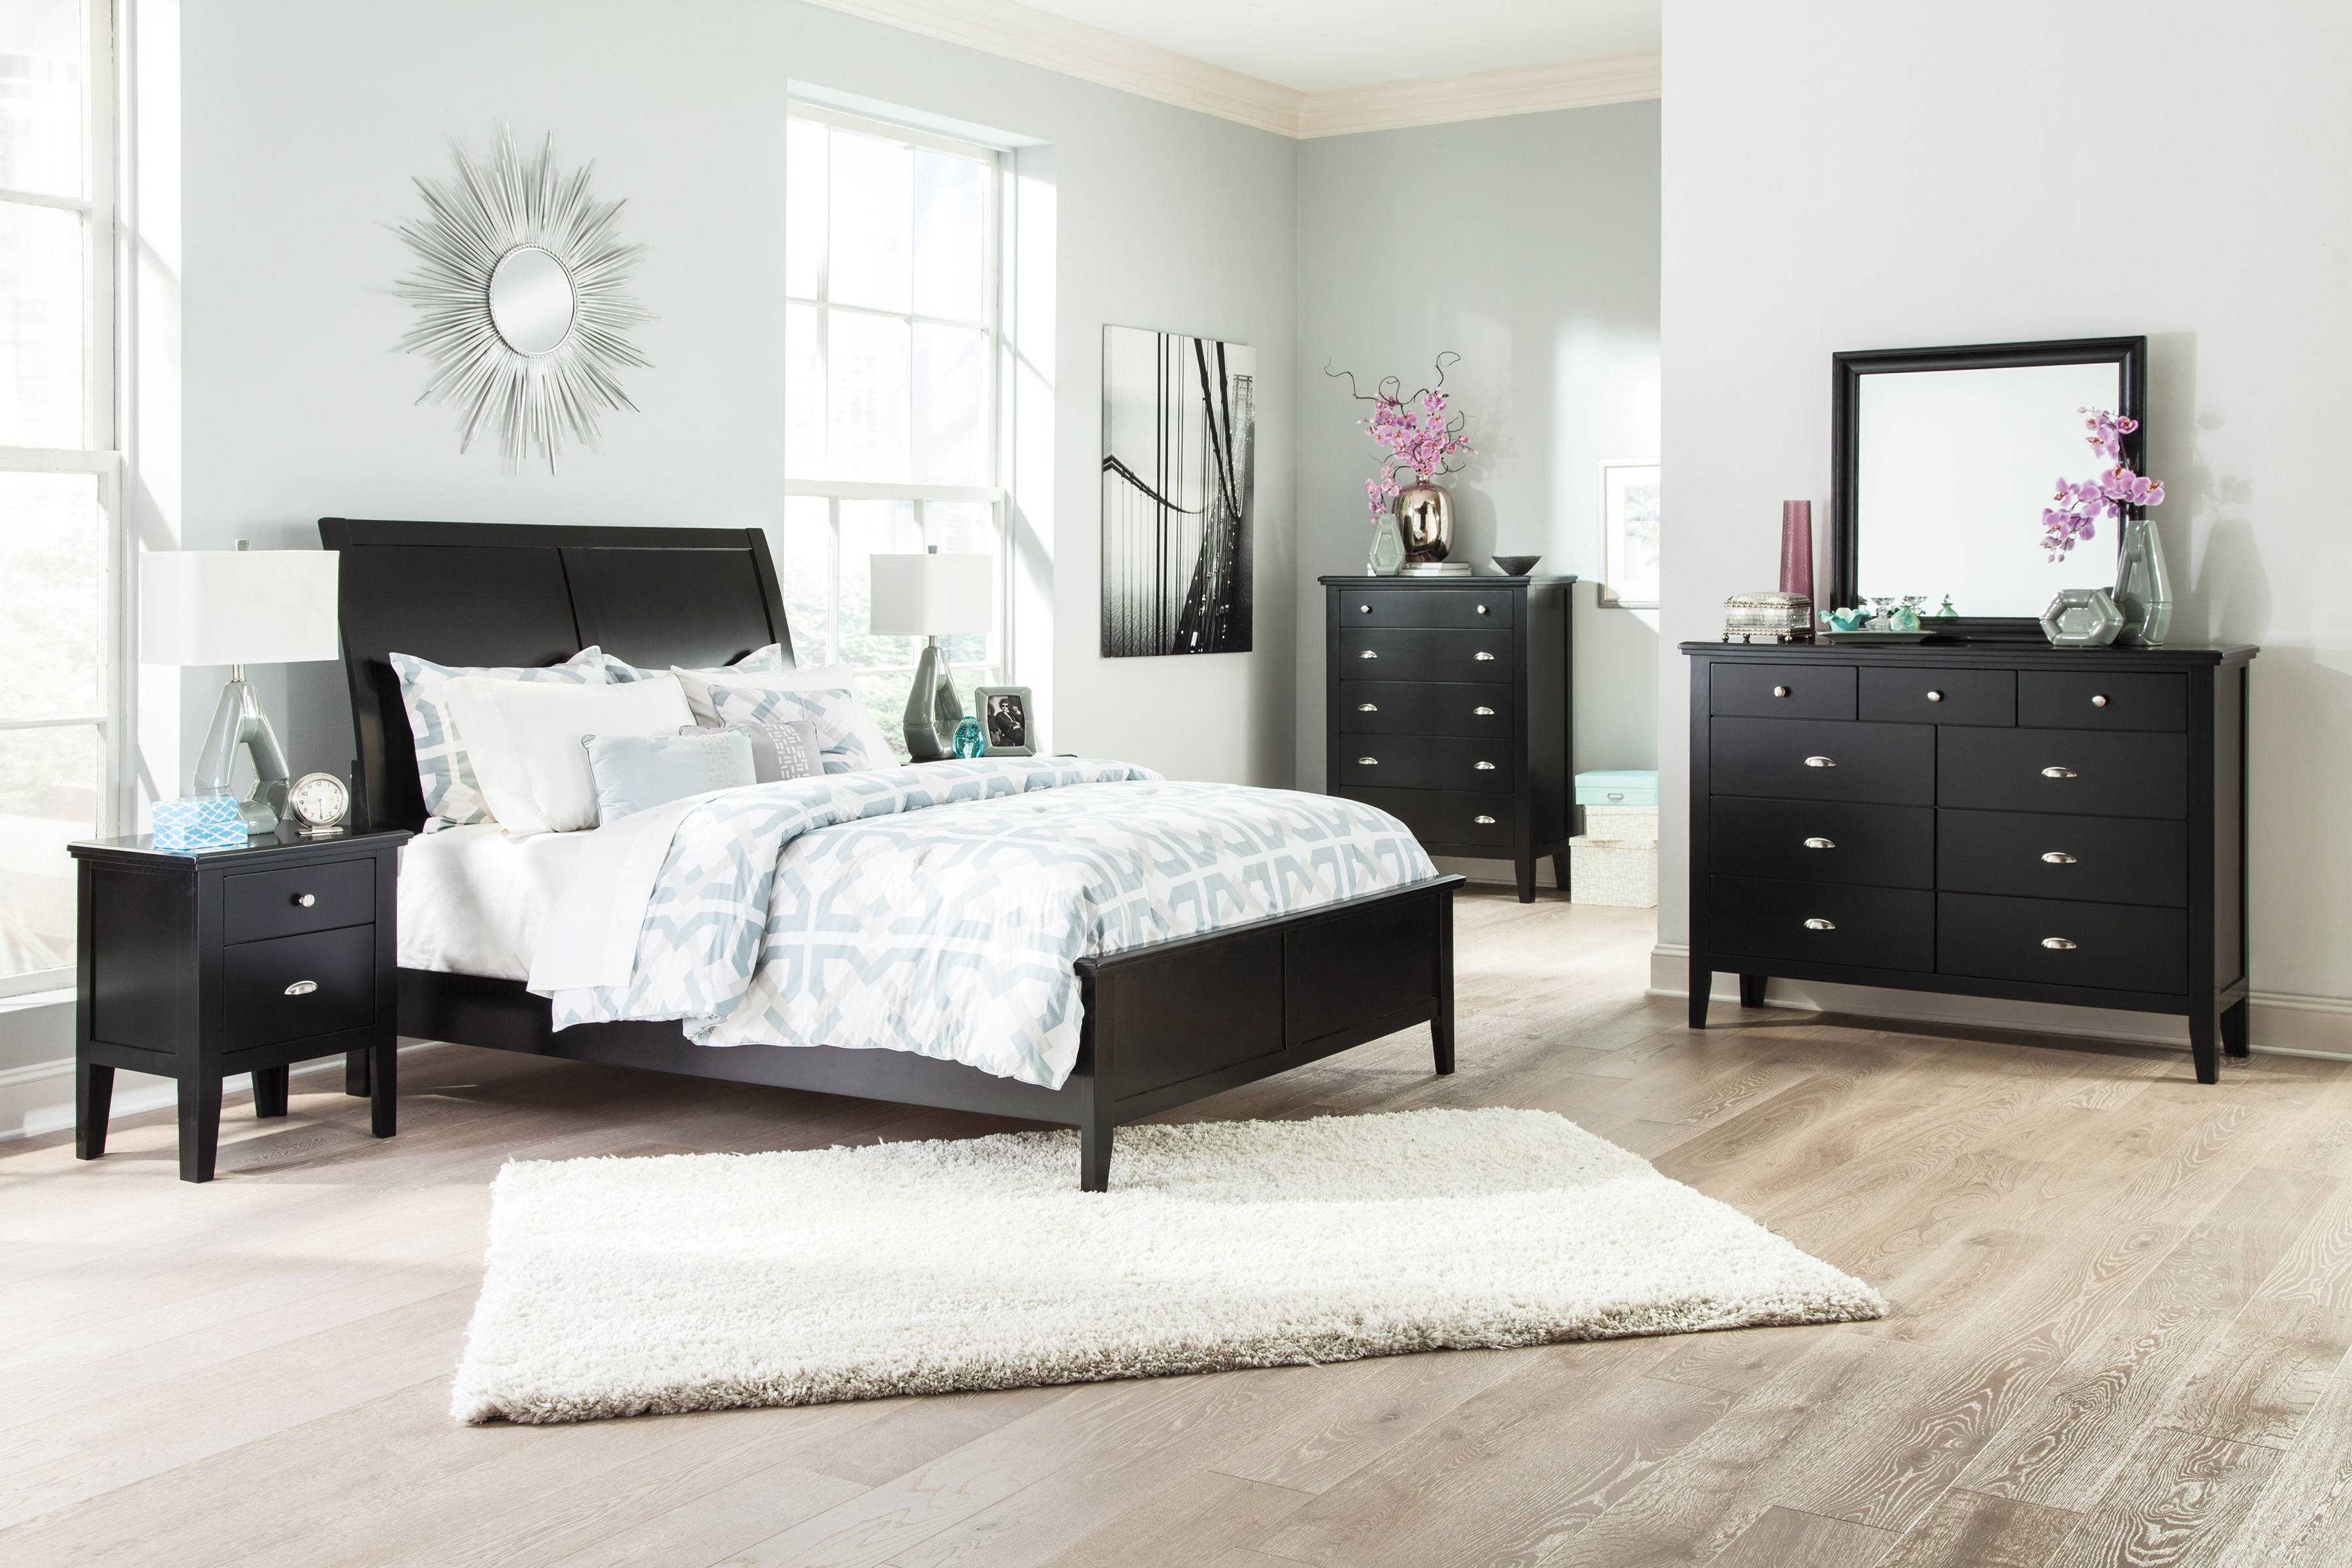 Braflin contemporary black master bedroom set the classy for Best deals on bedroom furniture